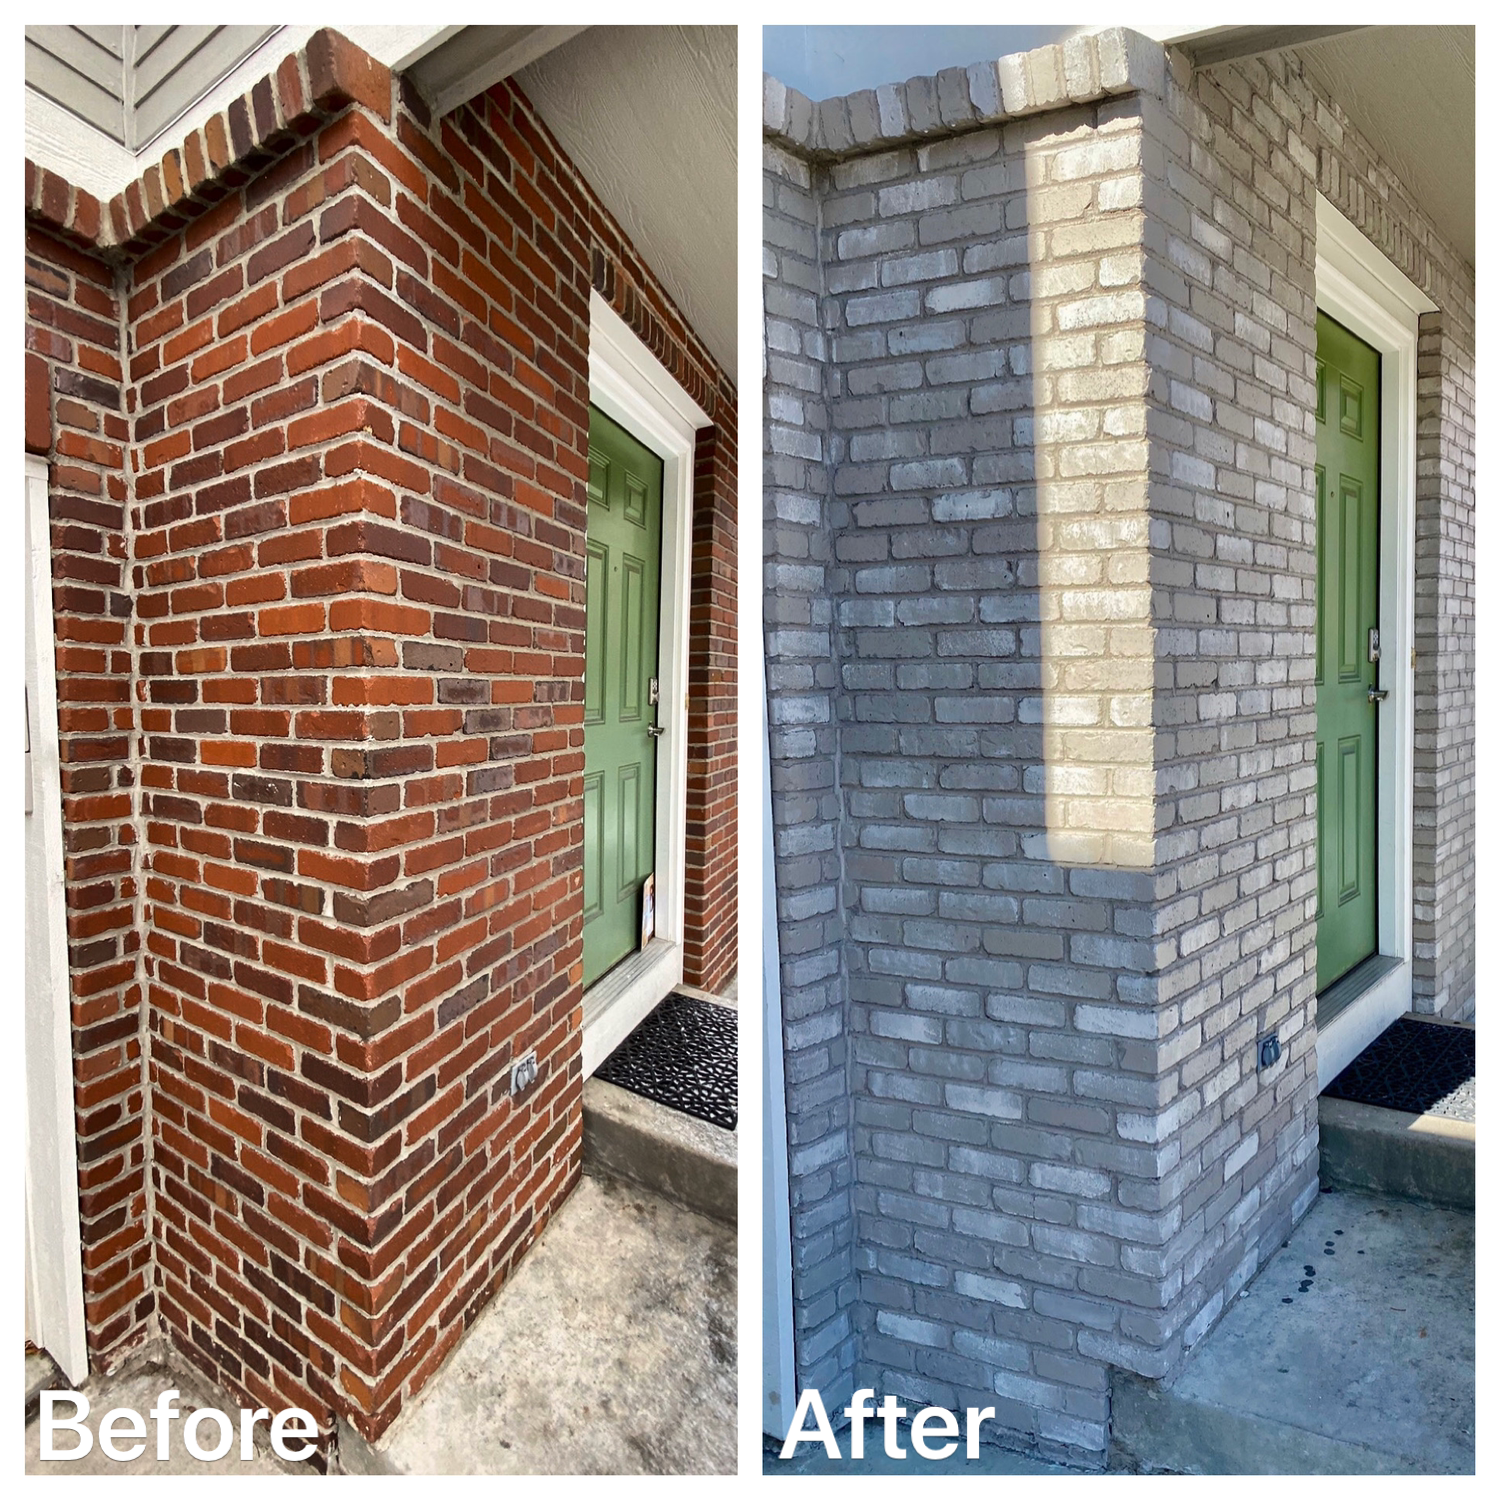 Brick Staining Brick Exterior House Painted Brick House Exterior Brick